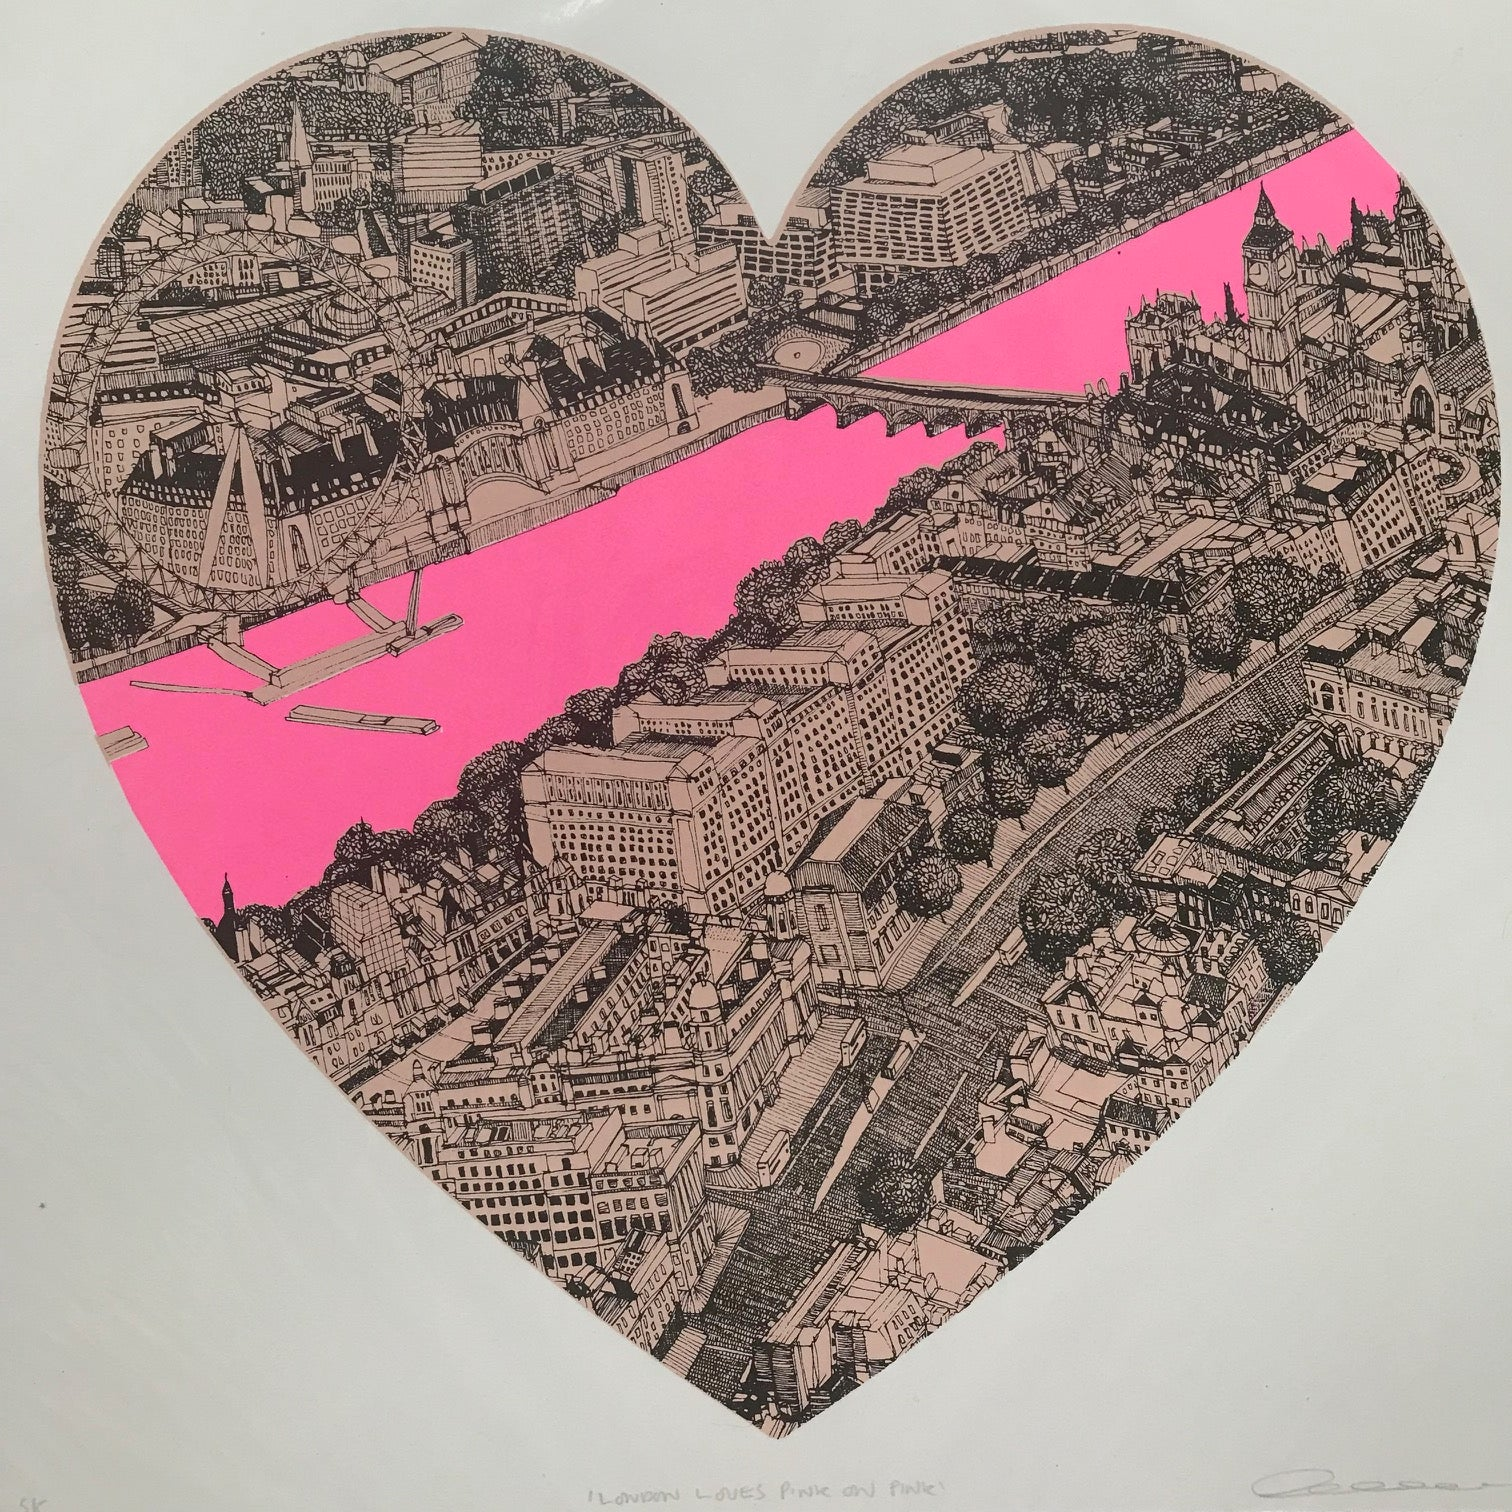 Clare Halifax: London Loves Pink